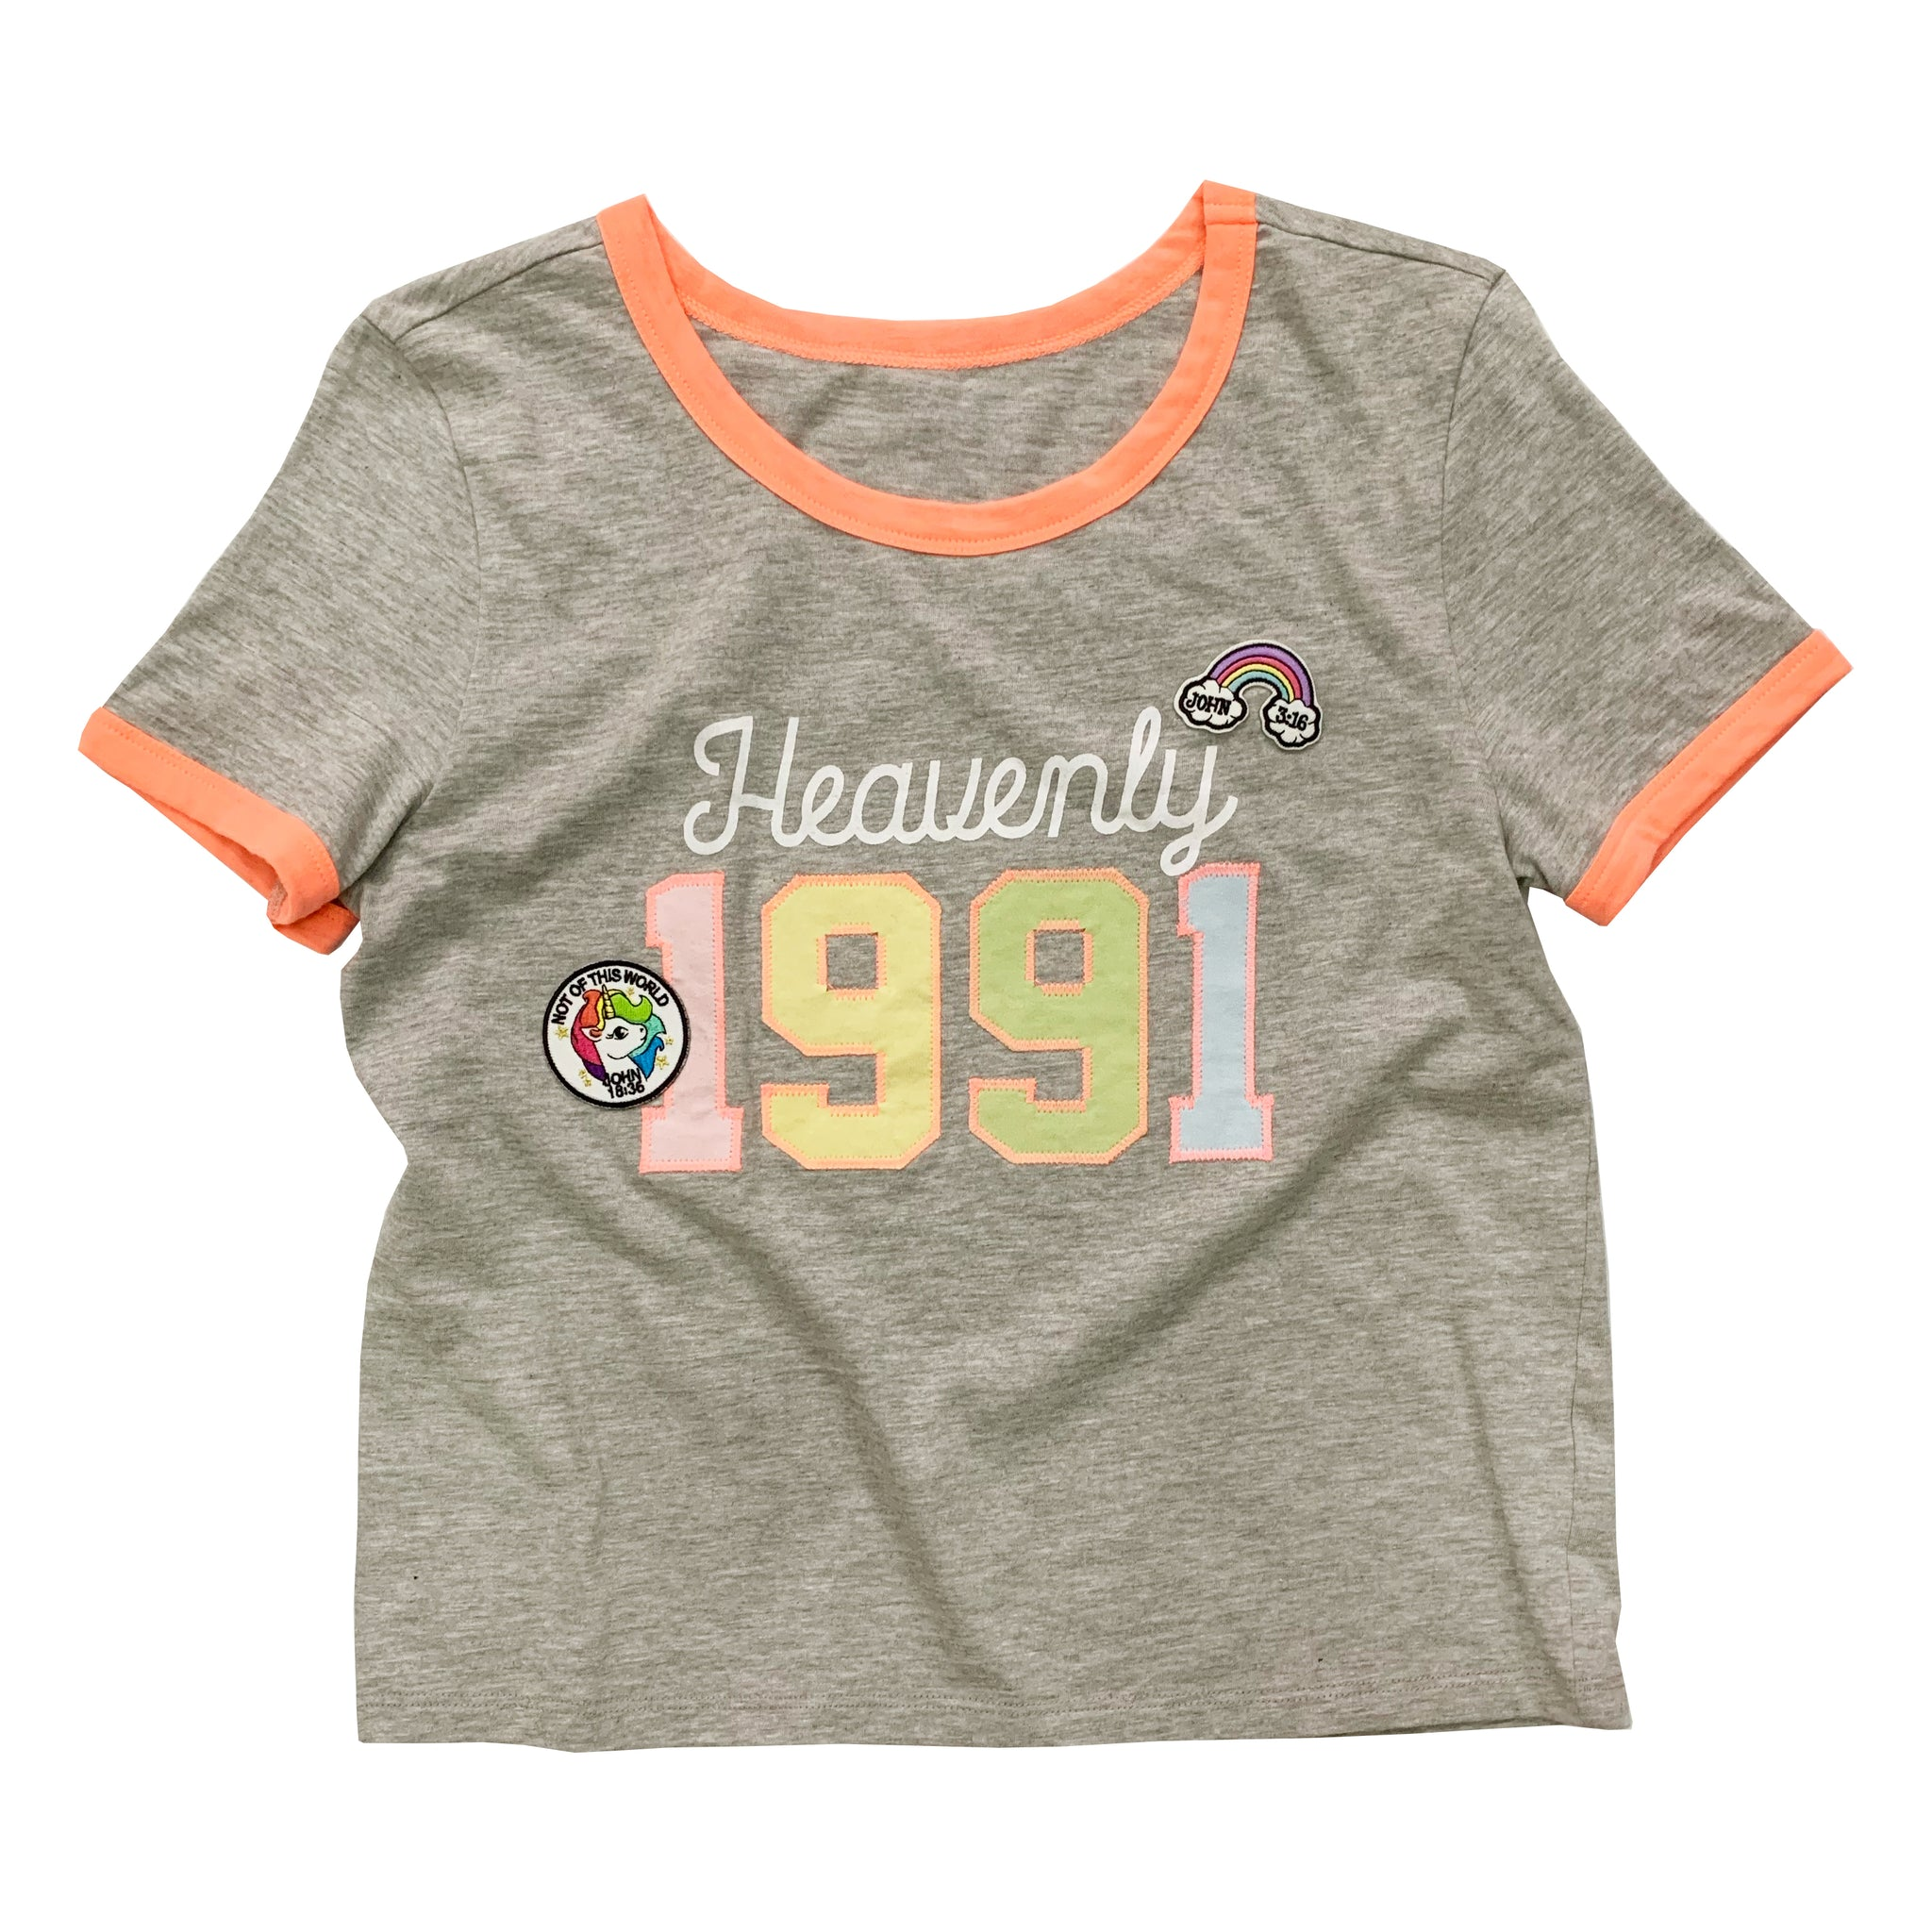 Heavenly 1991 Ringer Patch Tee